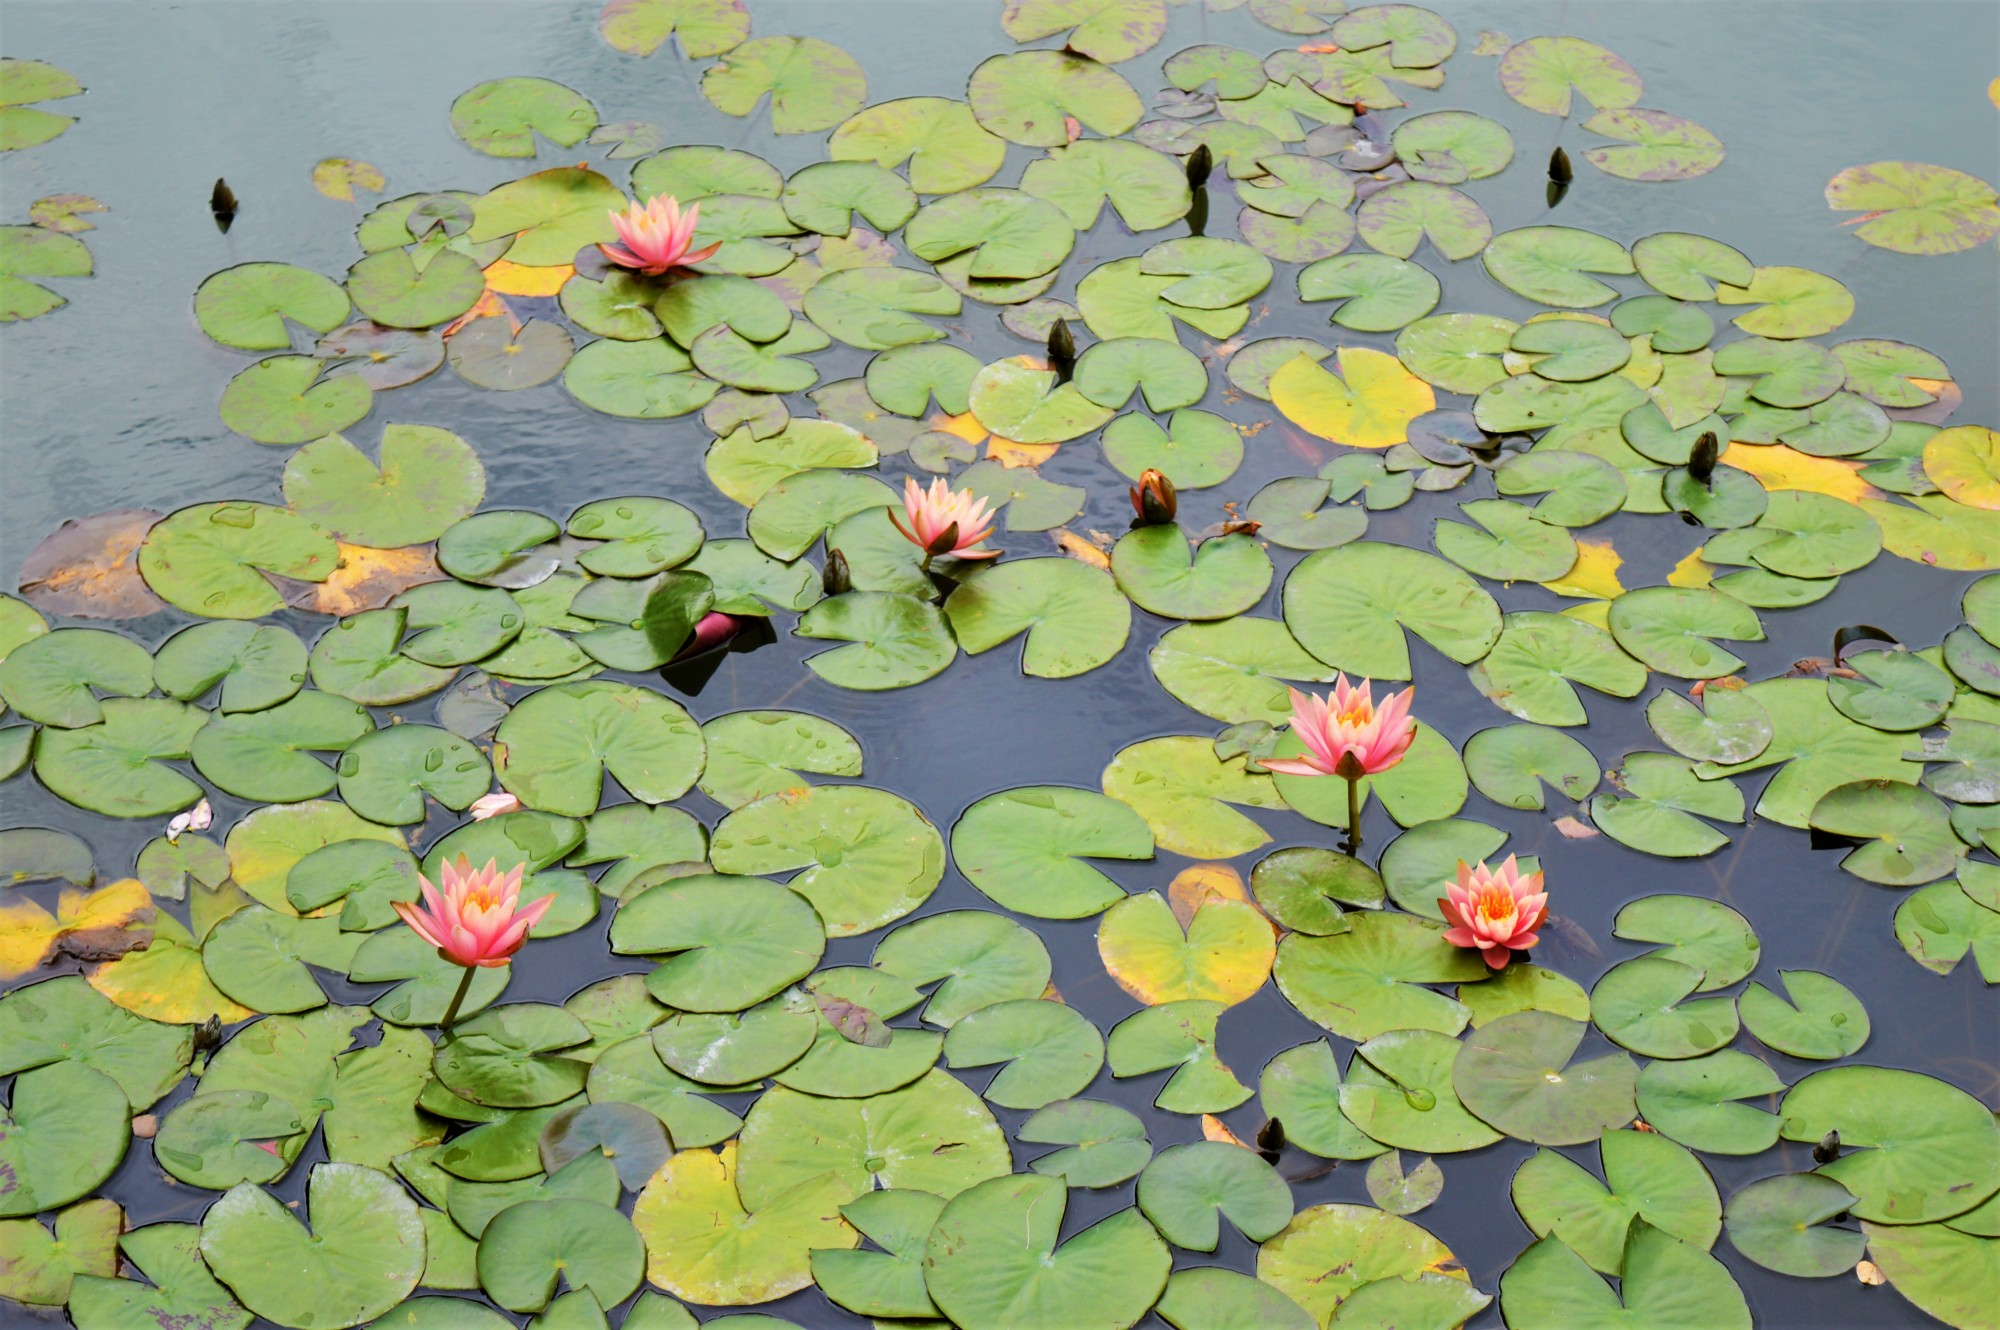 Lilies at Dr. Sun Yat-Sen Classical Chinese Garden Vancouver